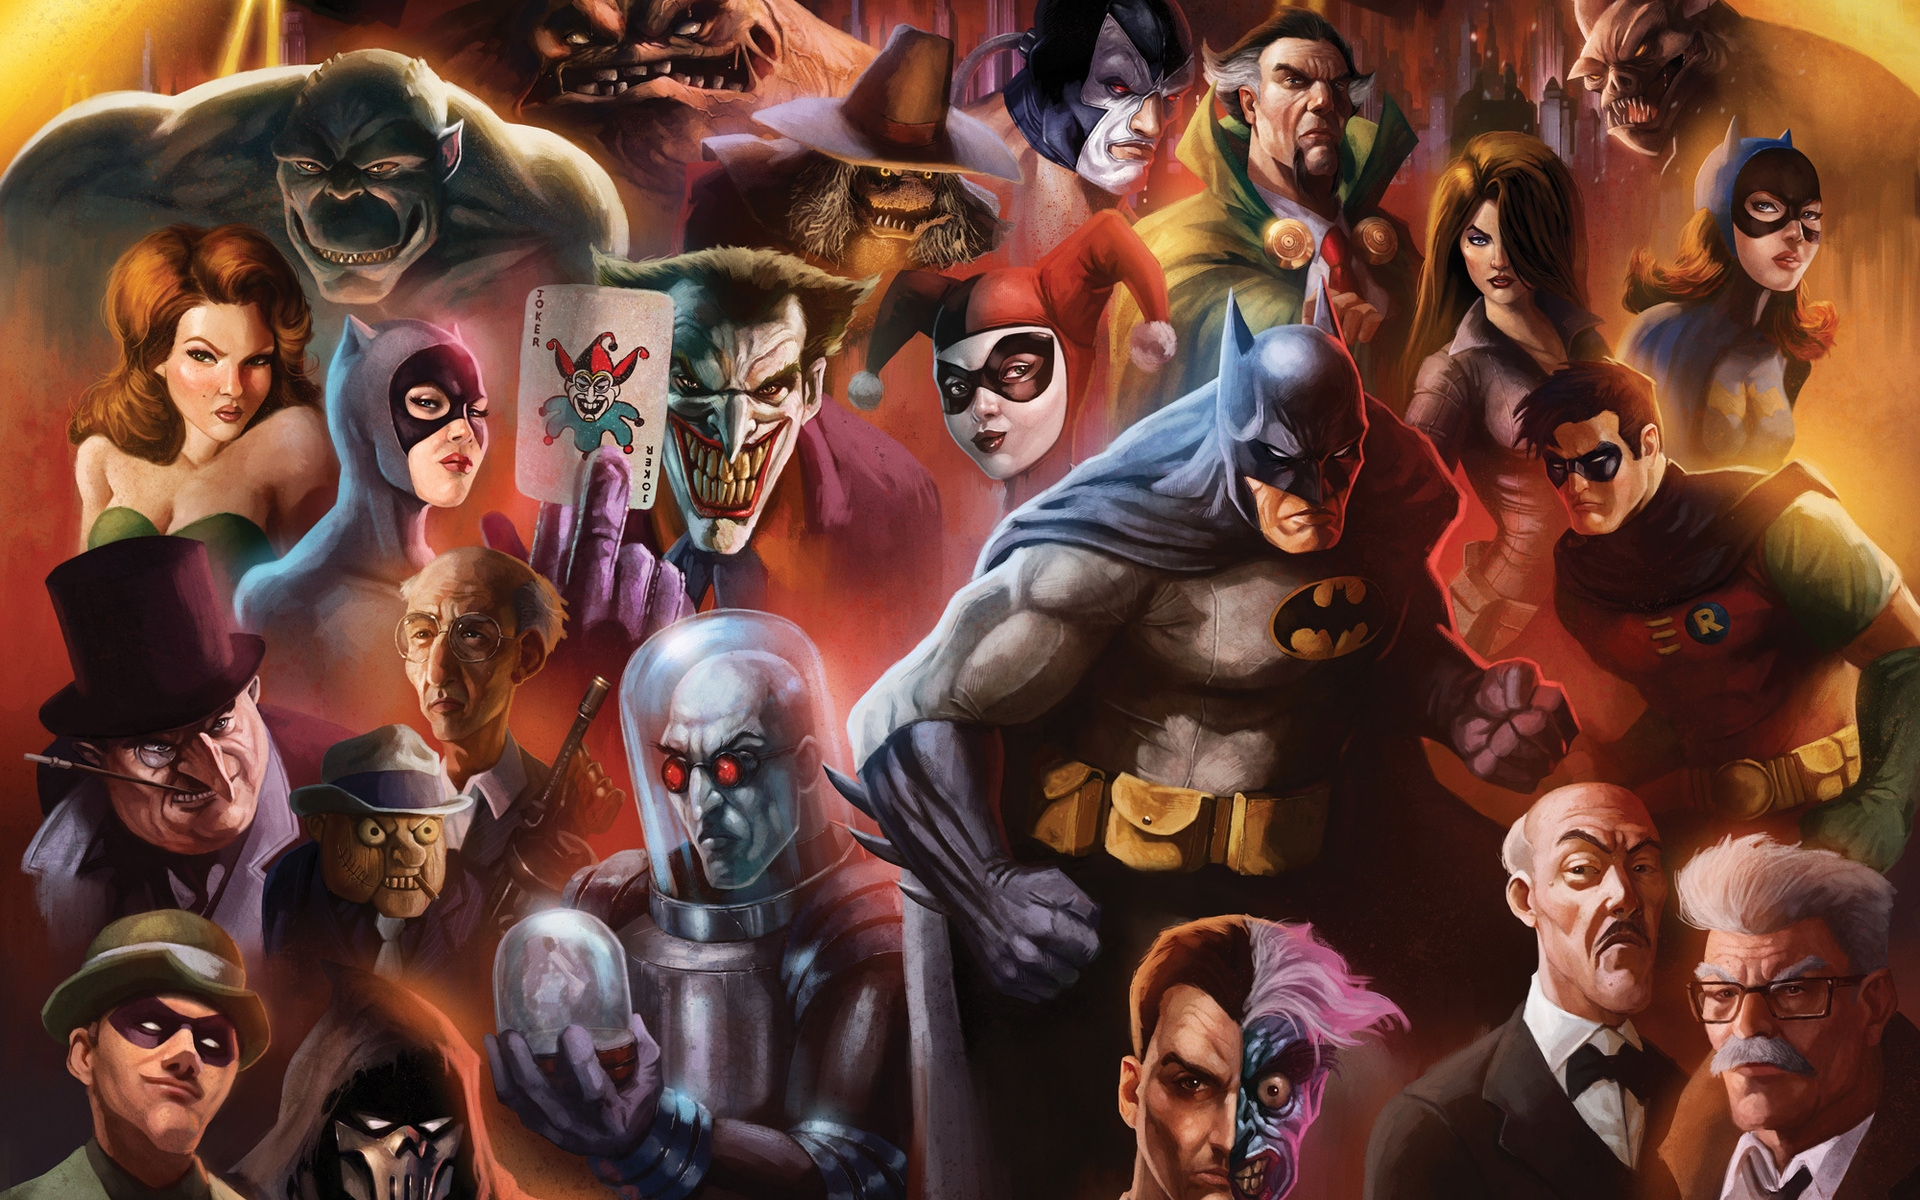 Dc comics hd wallpapers pixelstalk net - Female cartoon characters wallpapers ...